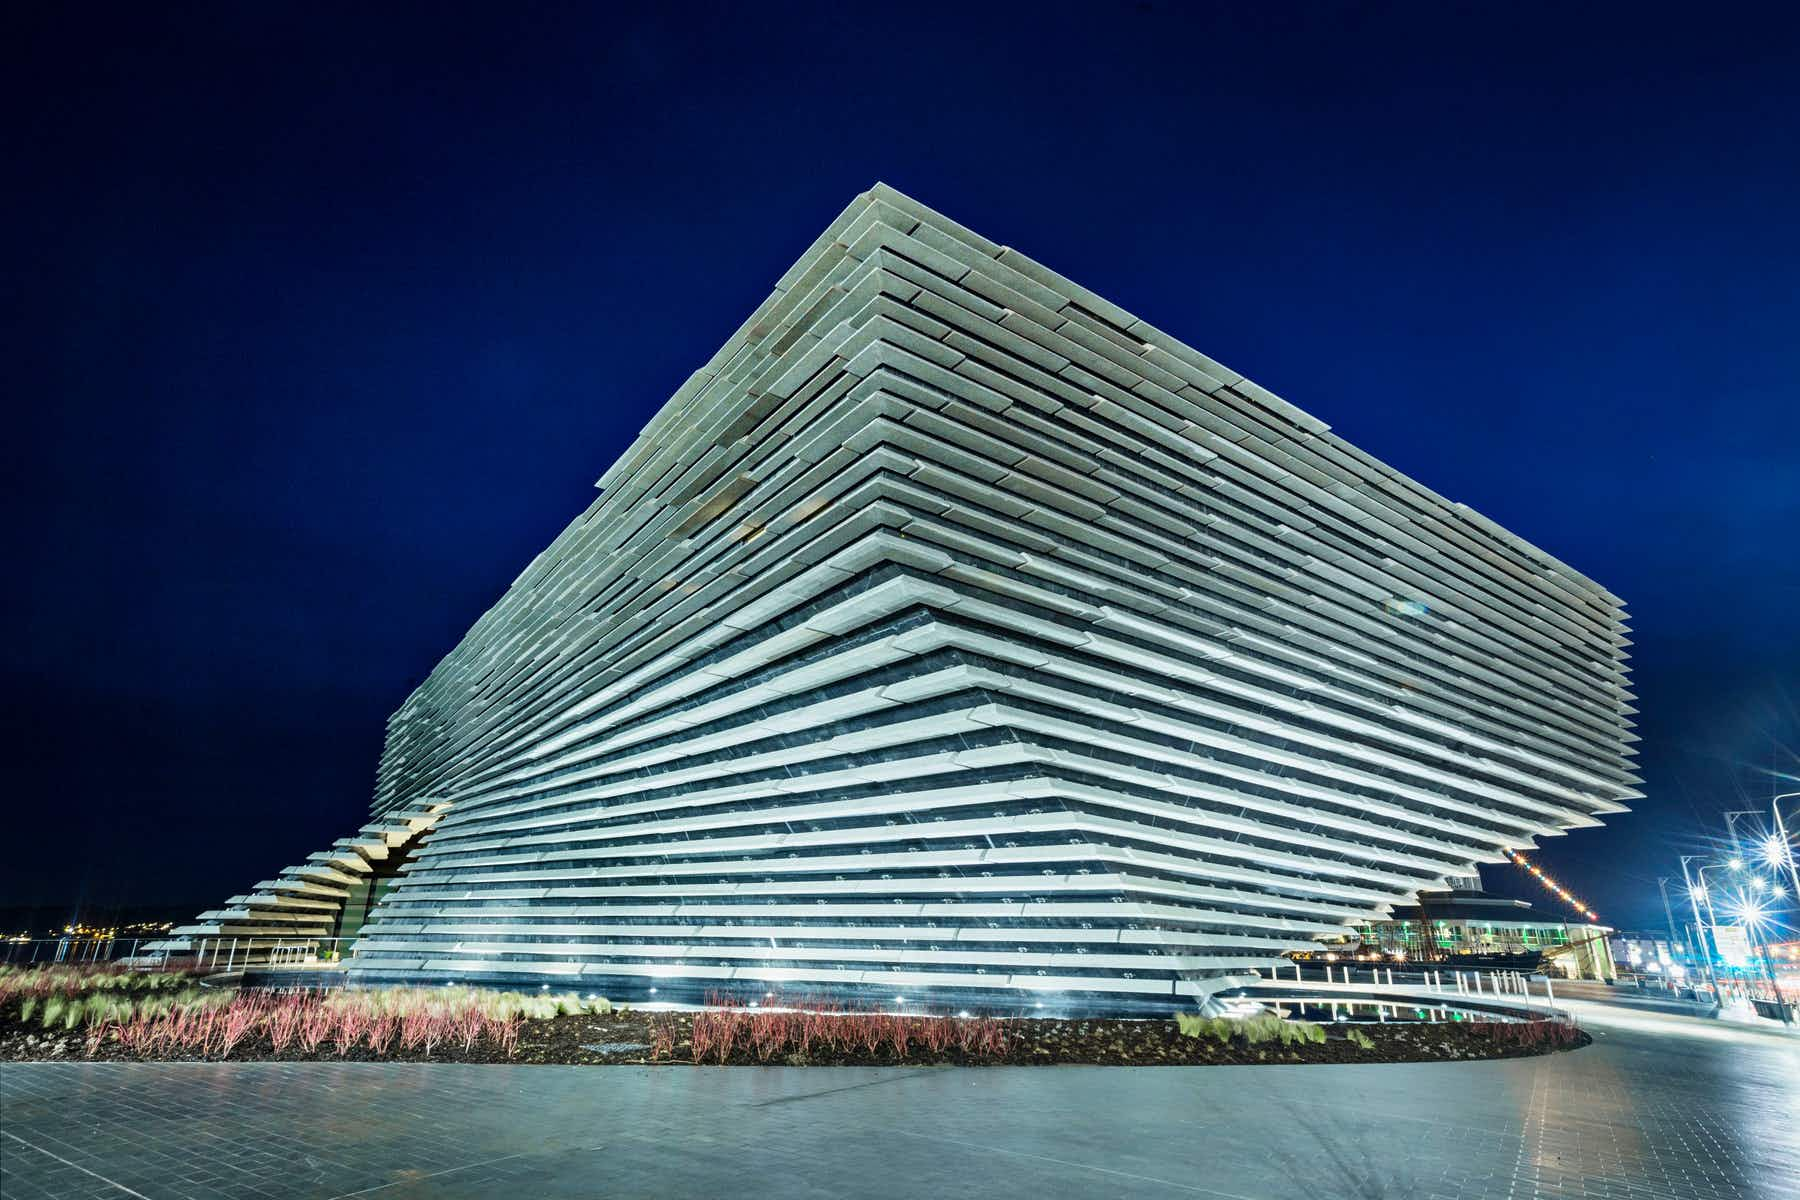 The first V&A museum outside London is opening in Dundee this weekend